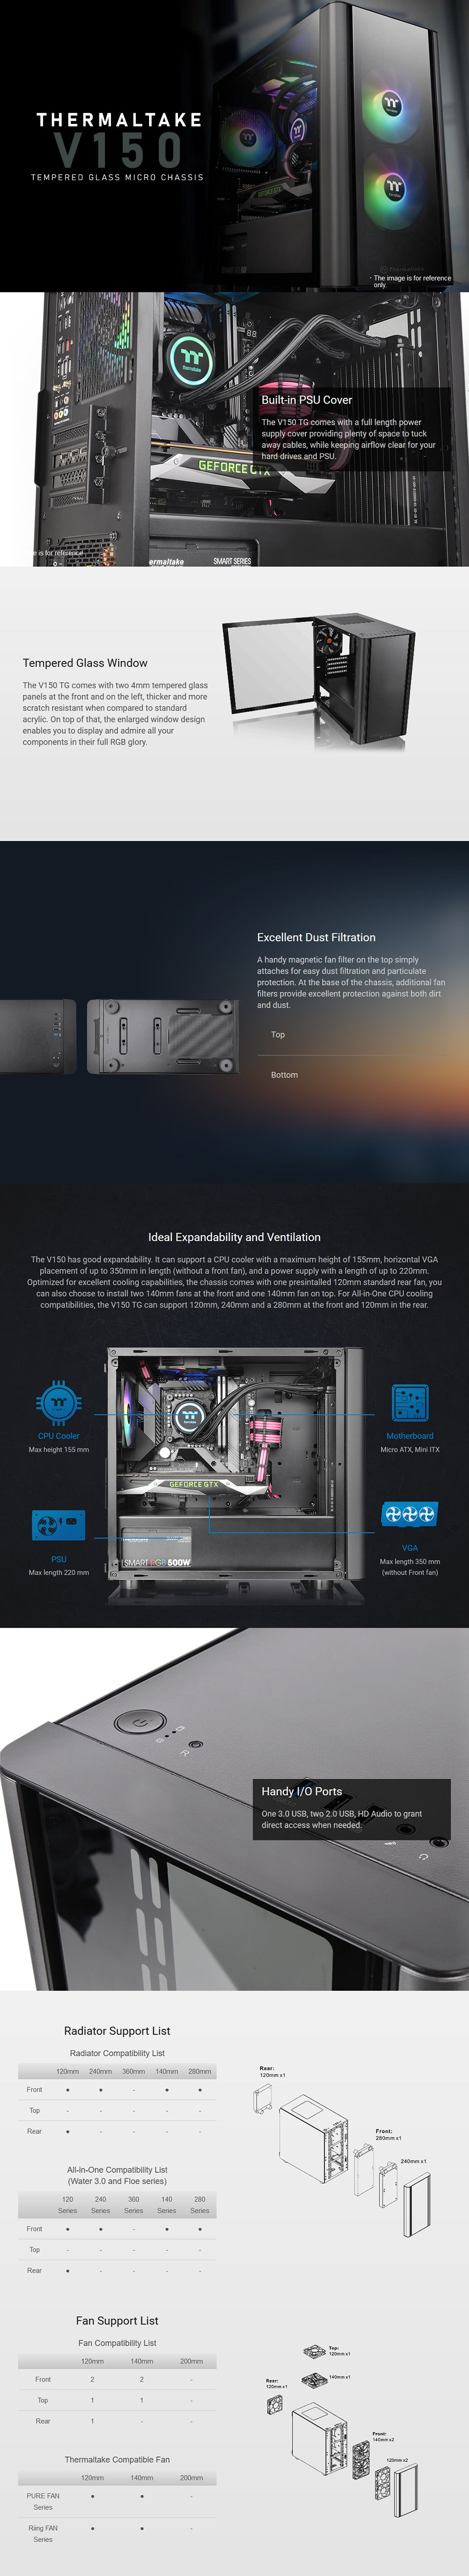 Thermaltake V150 Tempered Glass Micro-ATX Case - Overview 1